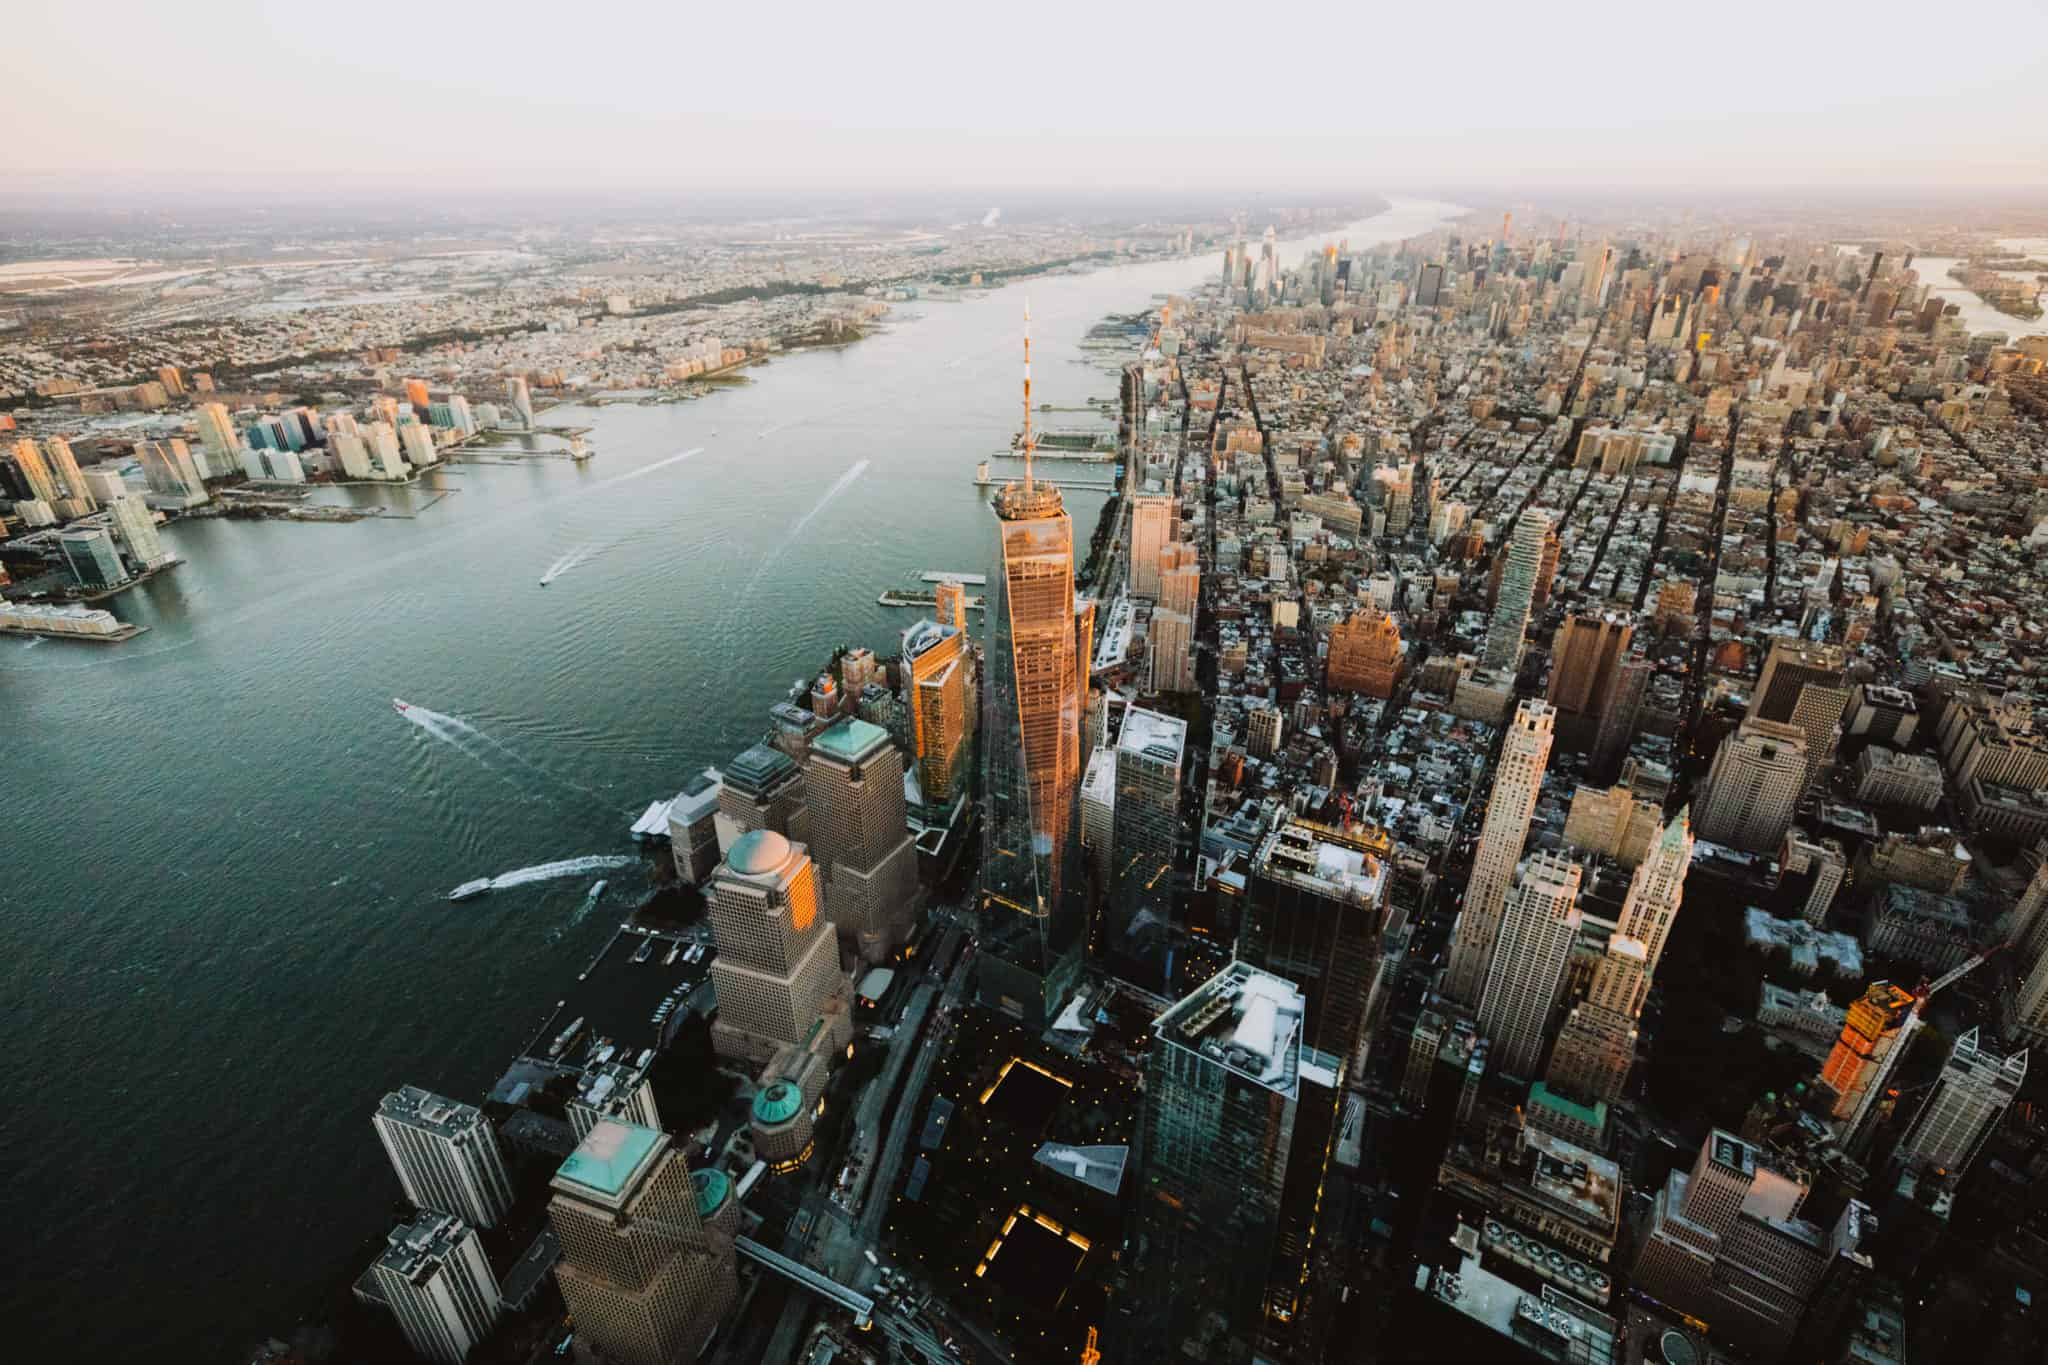 https://bubo.sk/uploads/galleries/7322/new-york-city-fly-nyon-doors-off-helicopter-photography-flying-above-new-york-city-the-mandagie-best-photo-spots-in-nyc-22.jpg